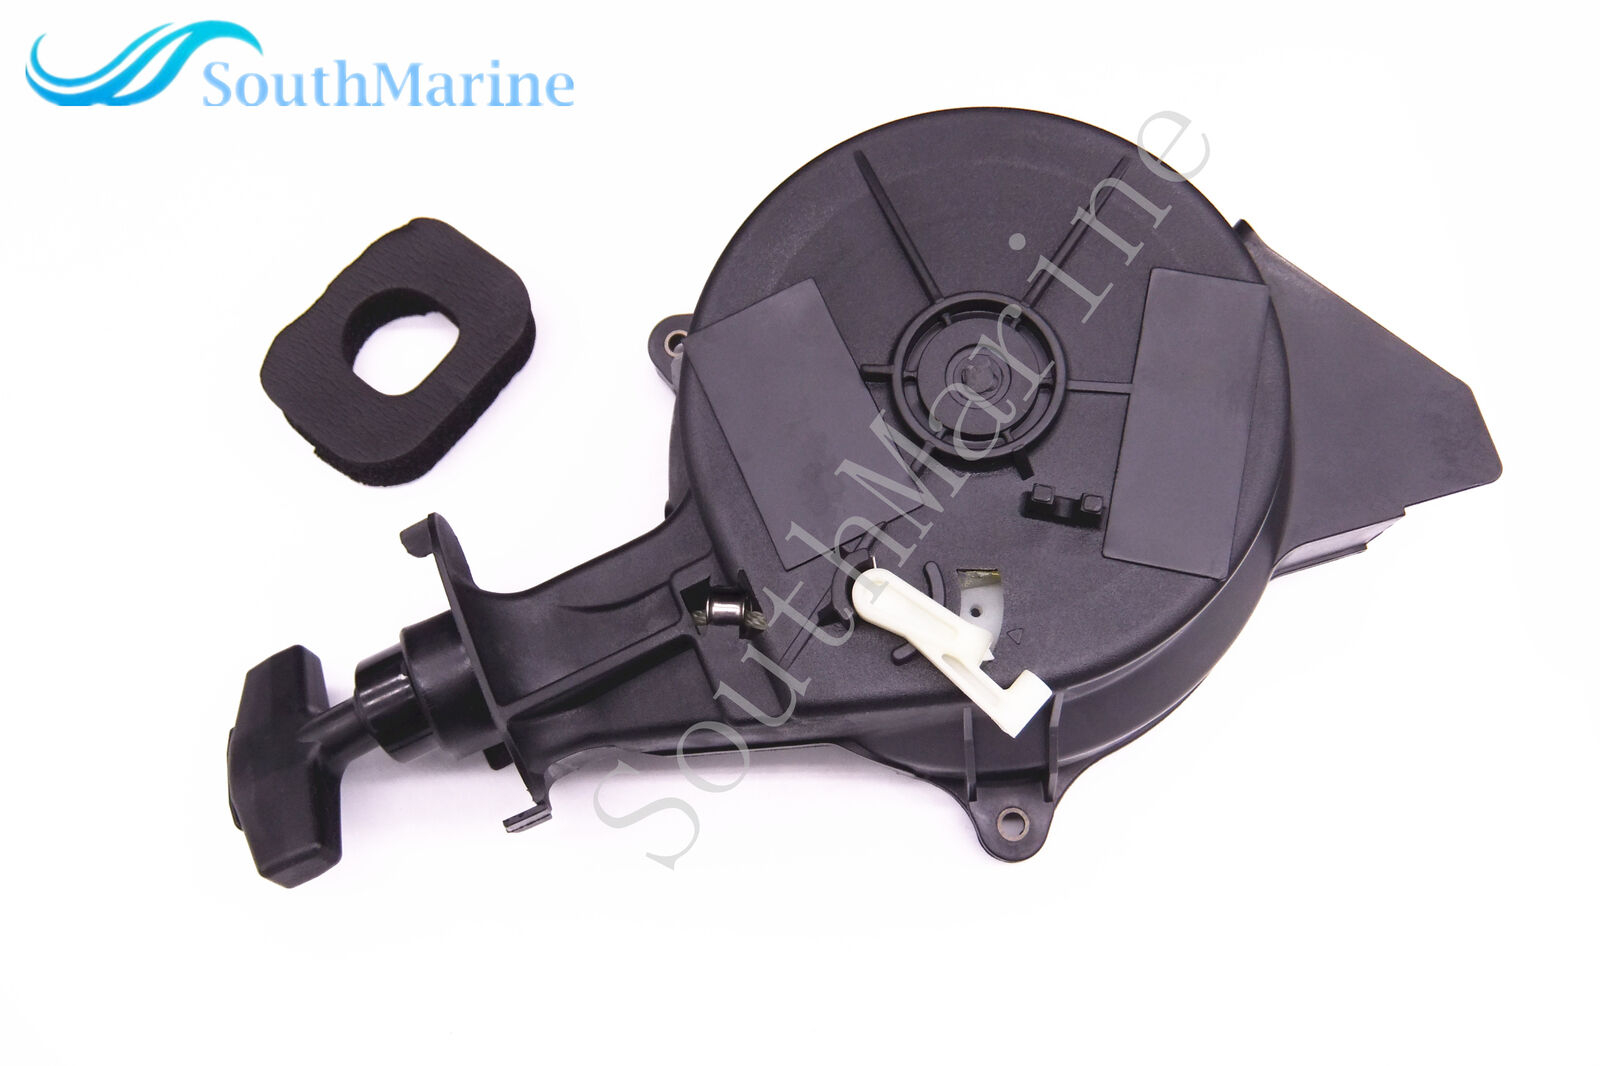 F4-04130000 67D-15710-00 Starter Assy for Parsun Yamaha 4-stroke F4 F5 Outboard